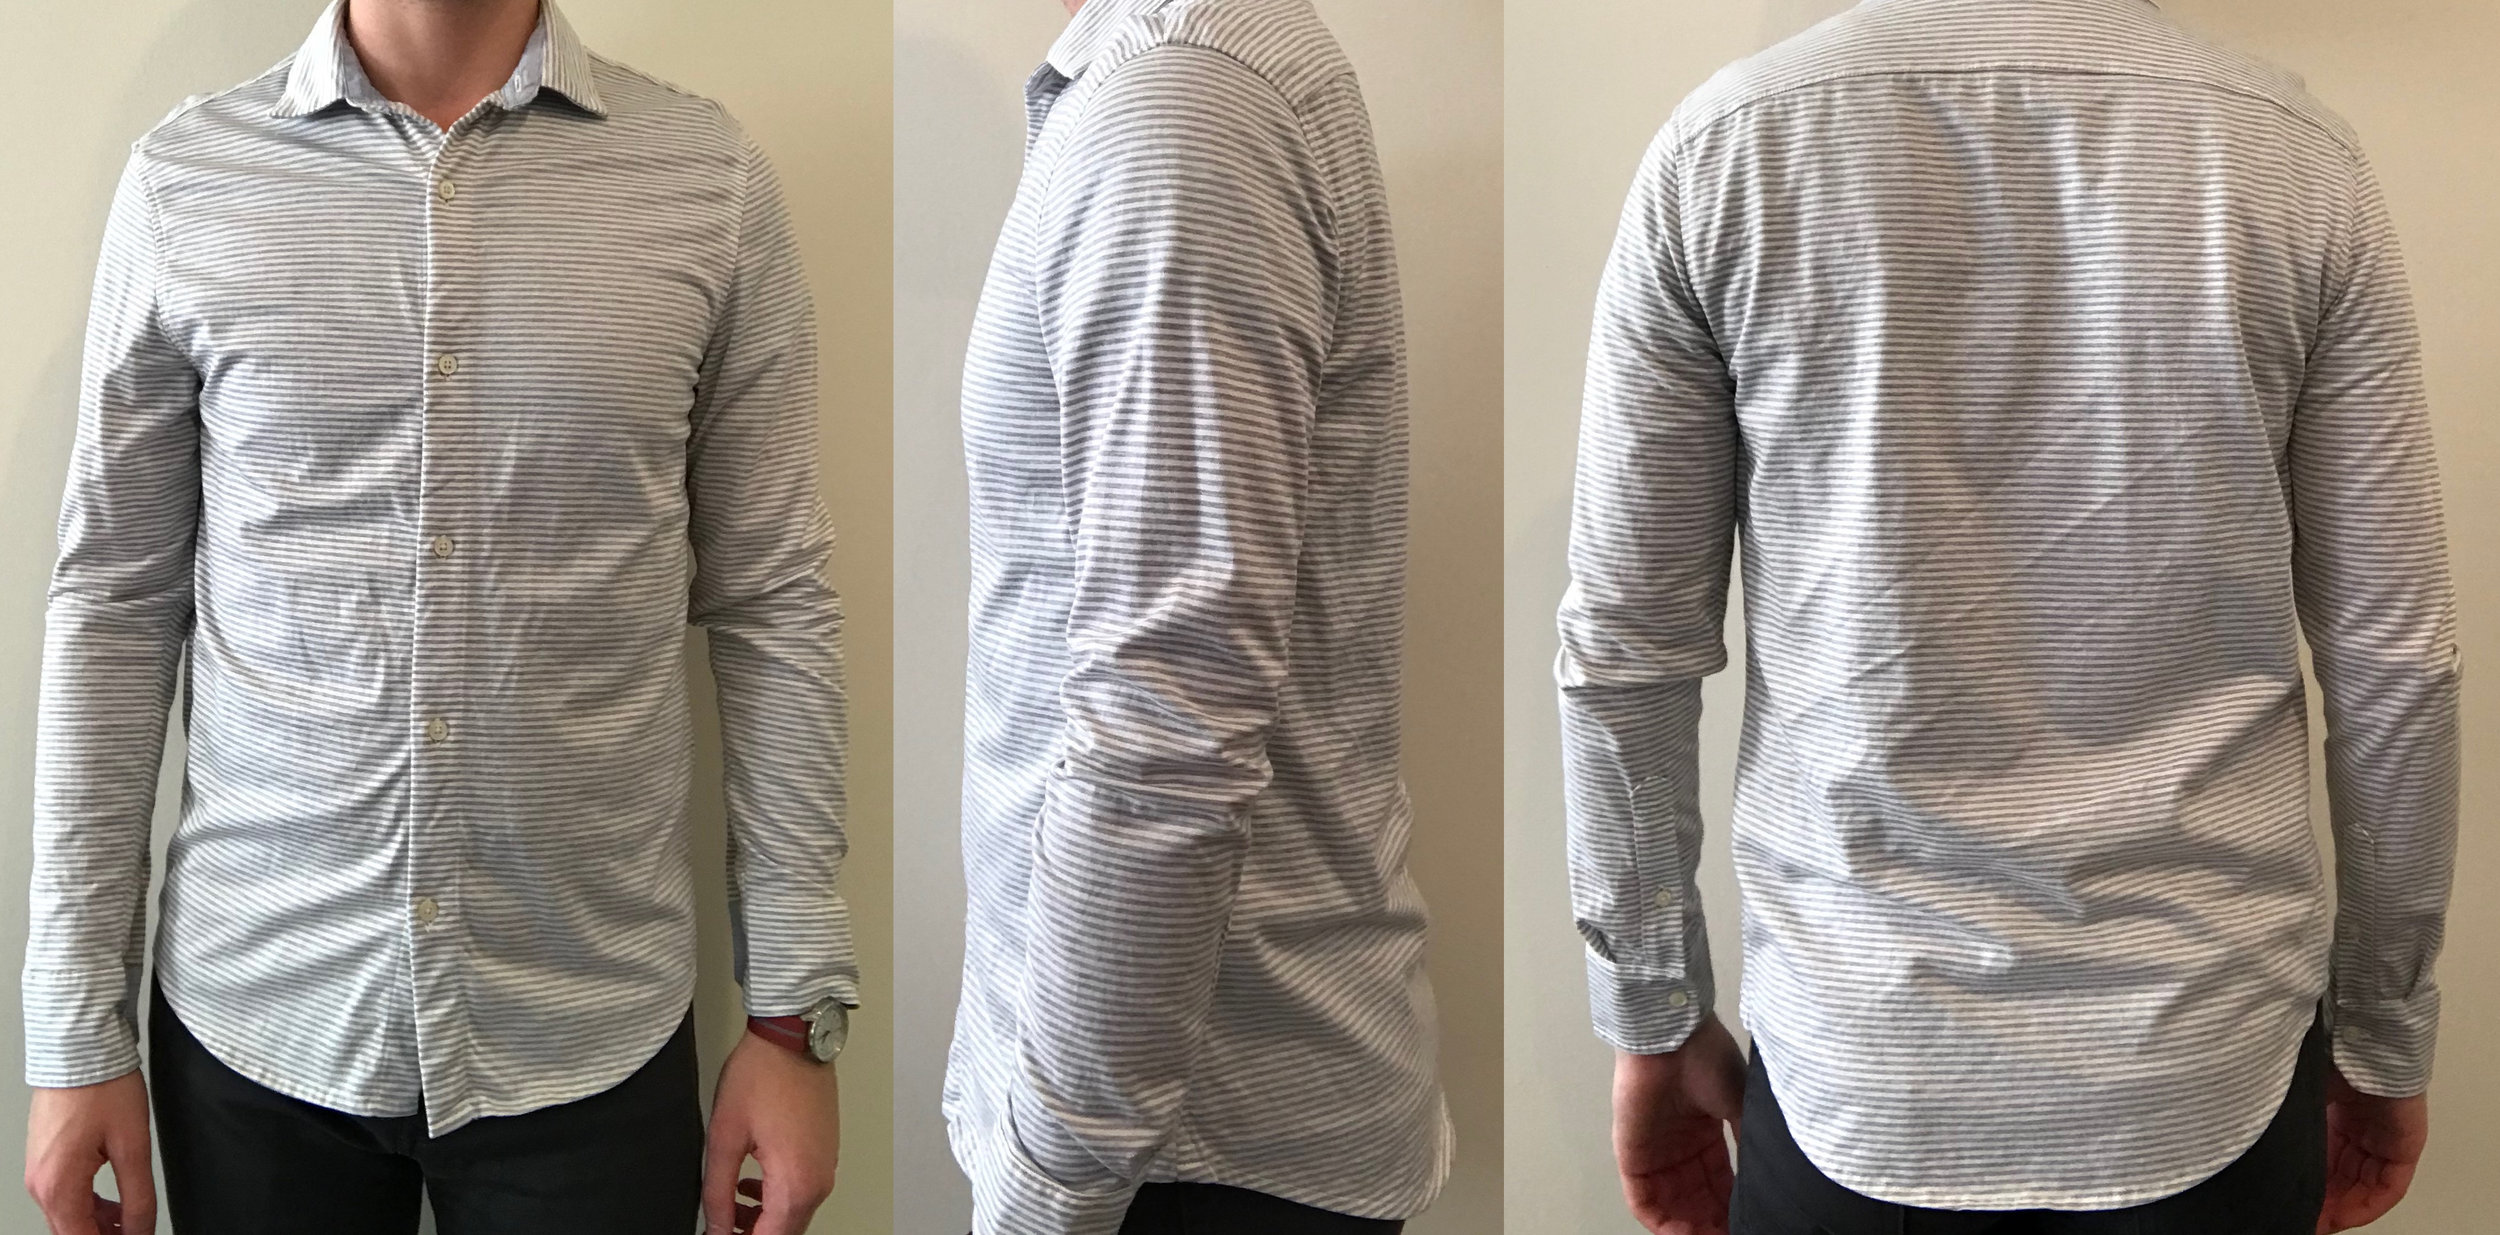 J Crew 'Untucked' Fit Shirts: A Comprehensive Review And